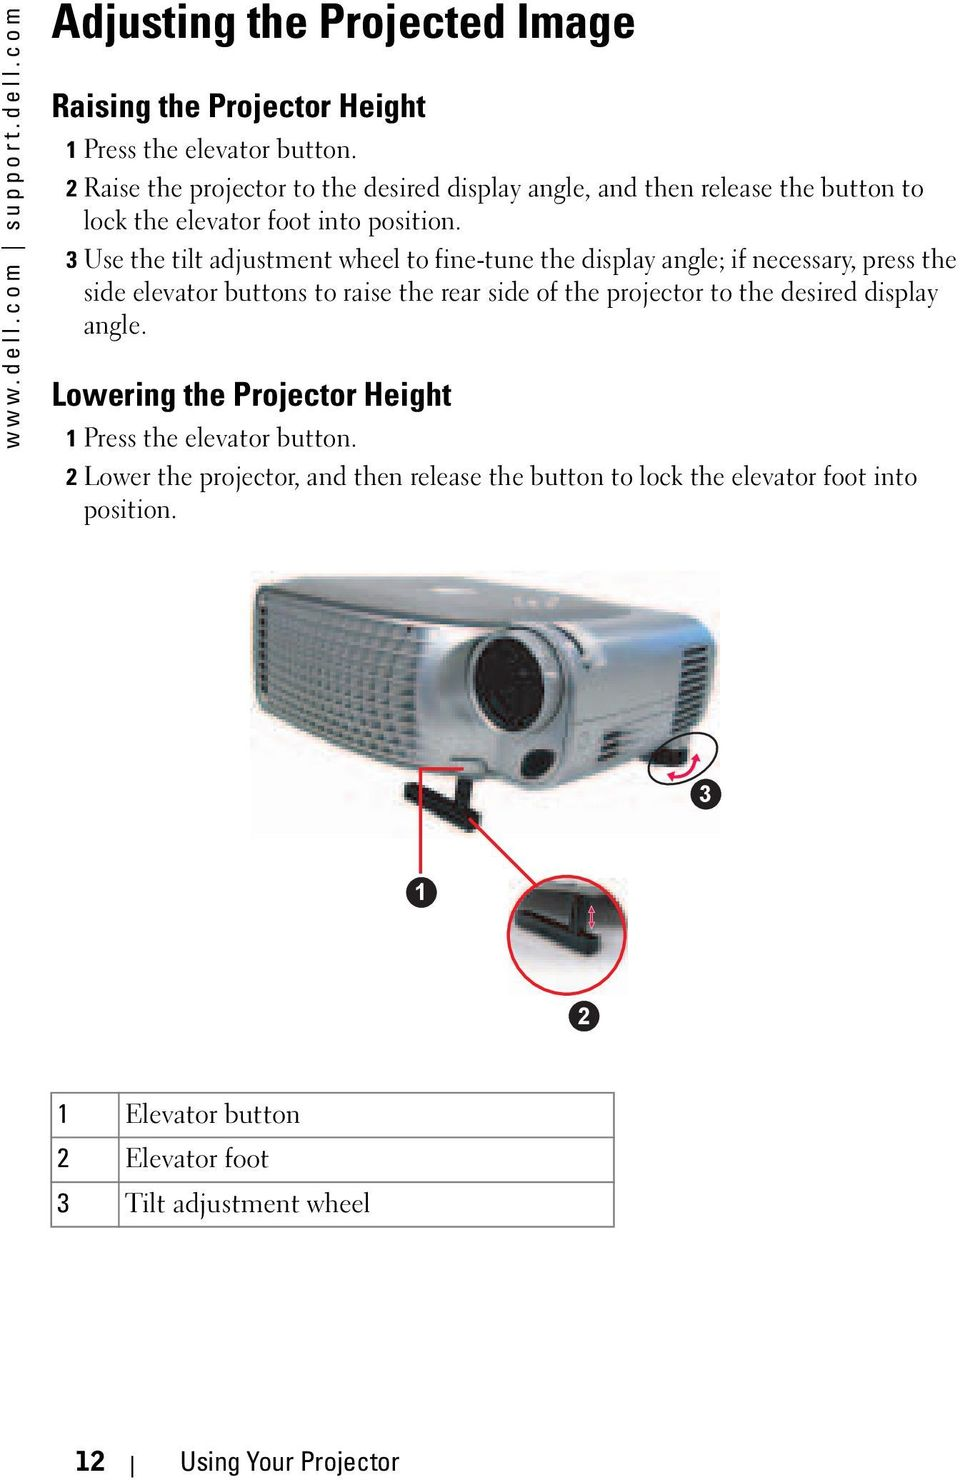 3 Use the tilt adjustment wheel to fine-tune the display angle; if necessary, press the side elevator buttons to raise the rear side of the projector to the desired